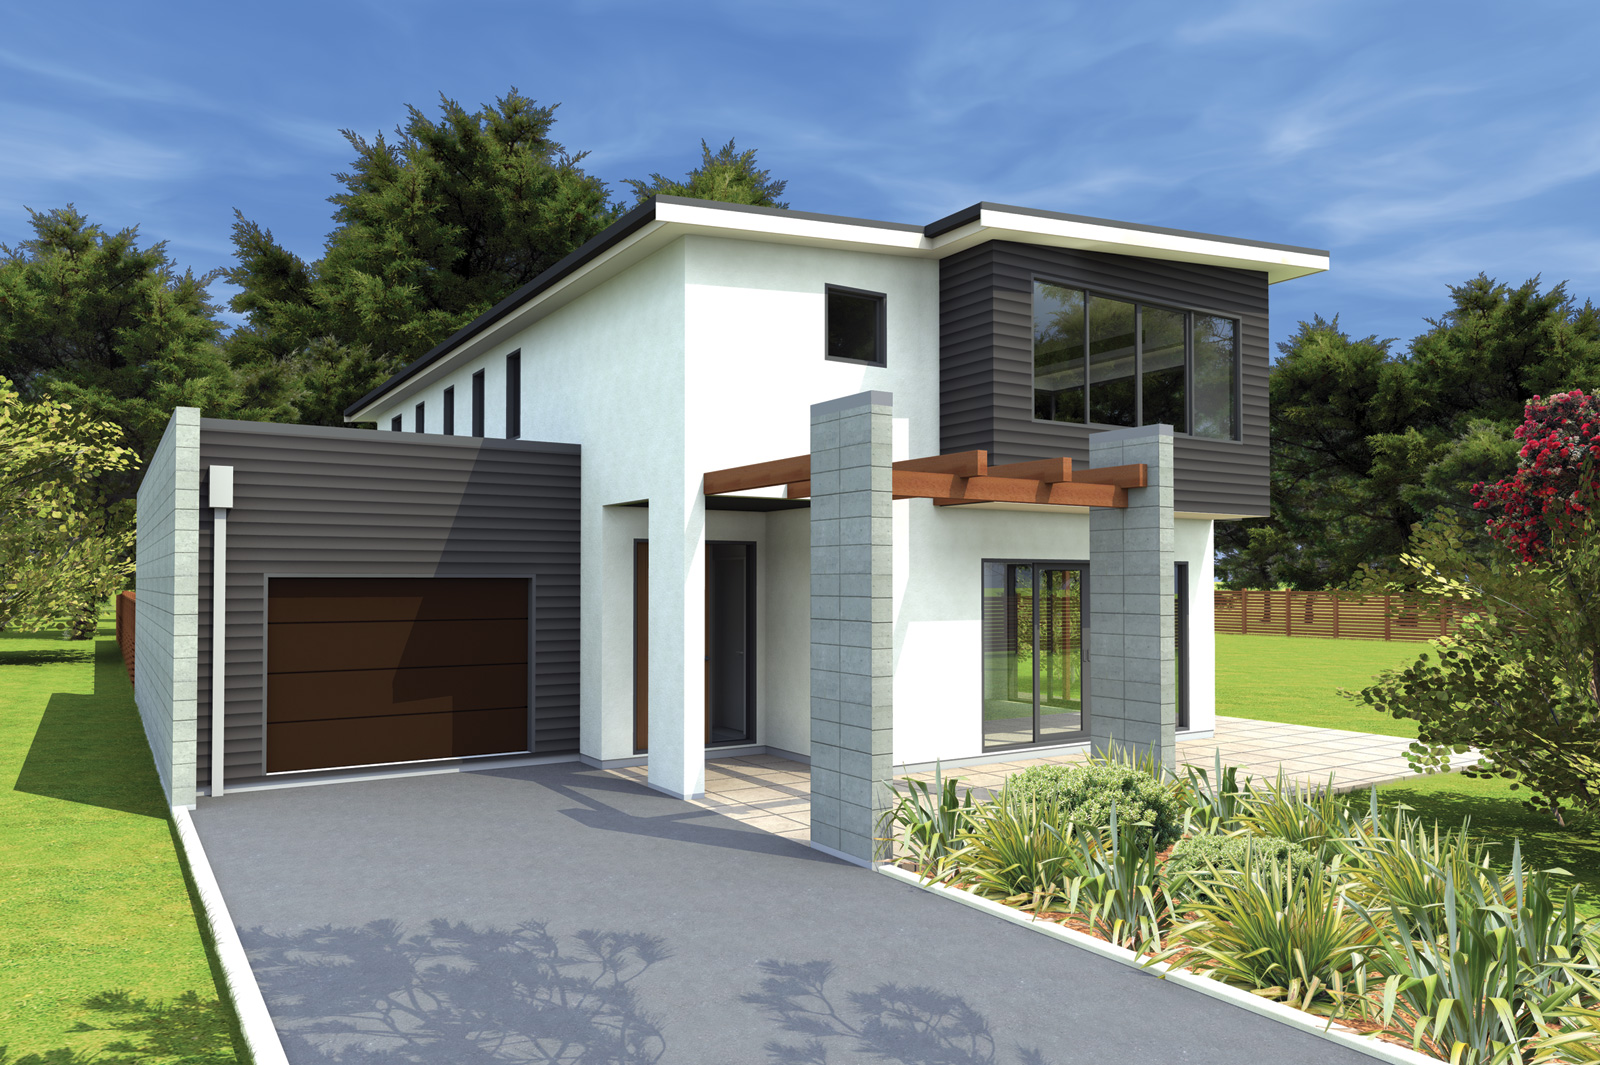 New home designs latest new modern homes designs new zealand - Home design pic ...